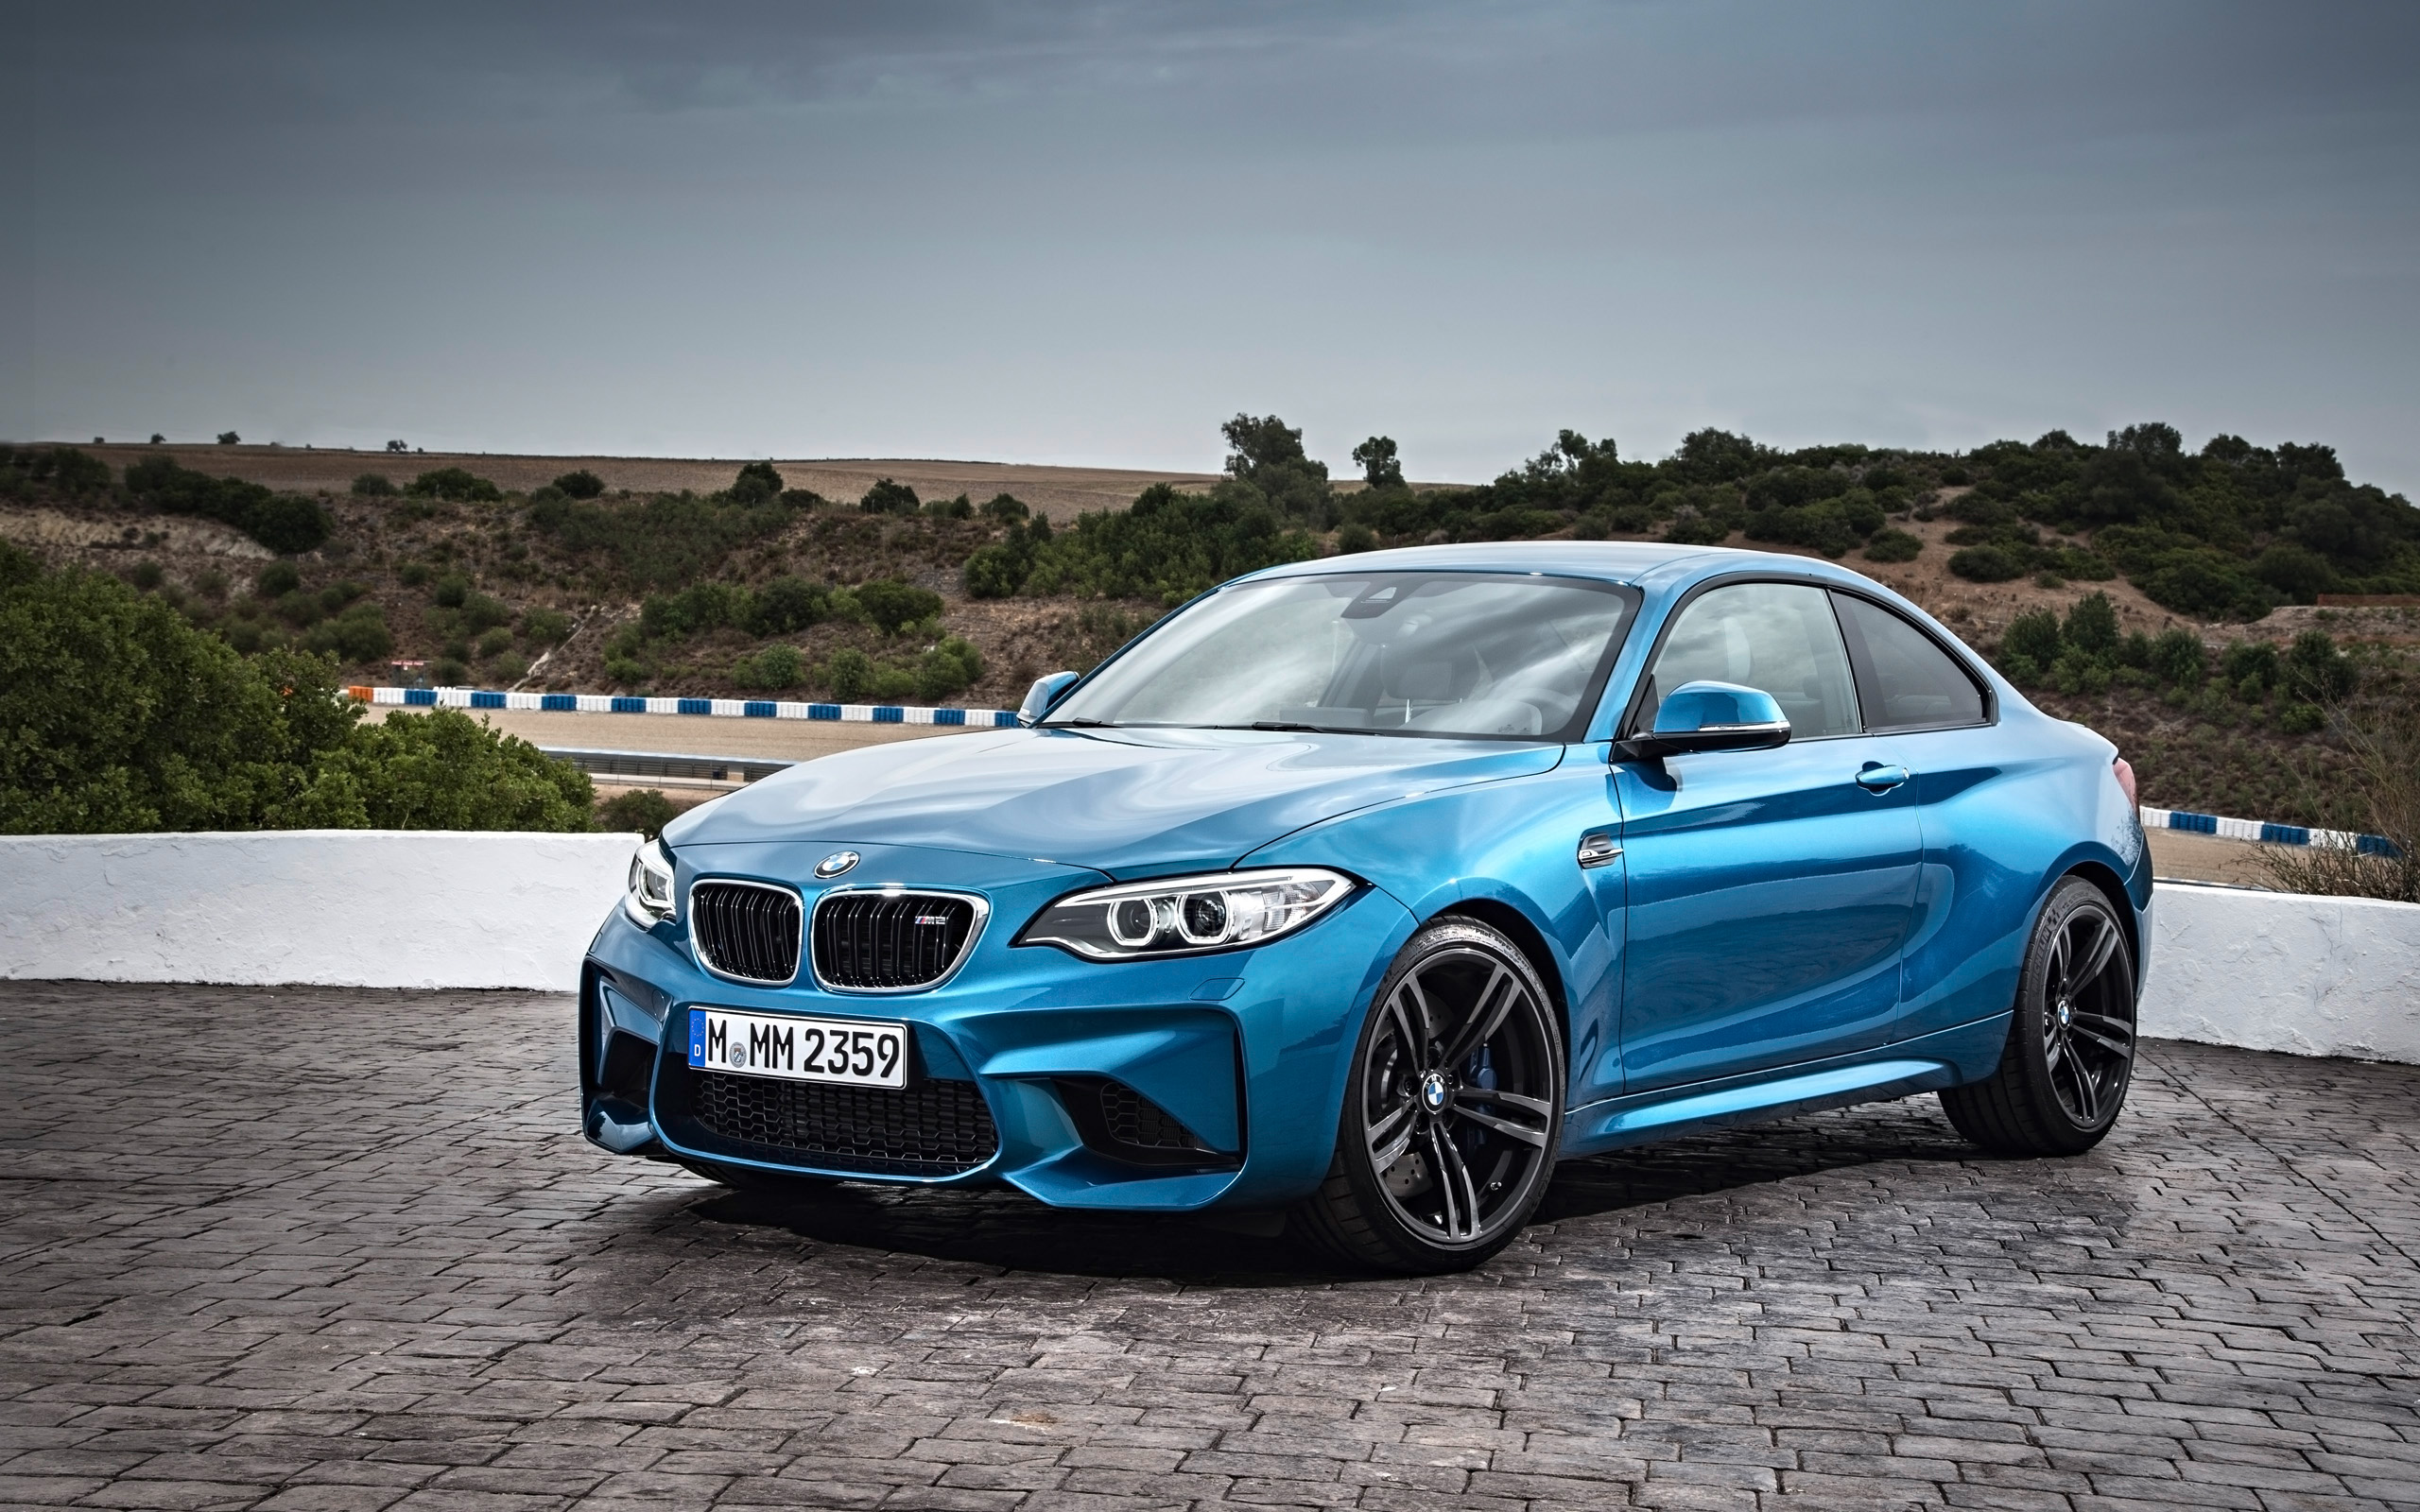 2016 bmw m2 coupe wallpaper hd car wallpapers id 5857. Black Bedroom Furniture Sets. Home Design Ideas